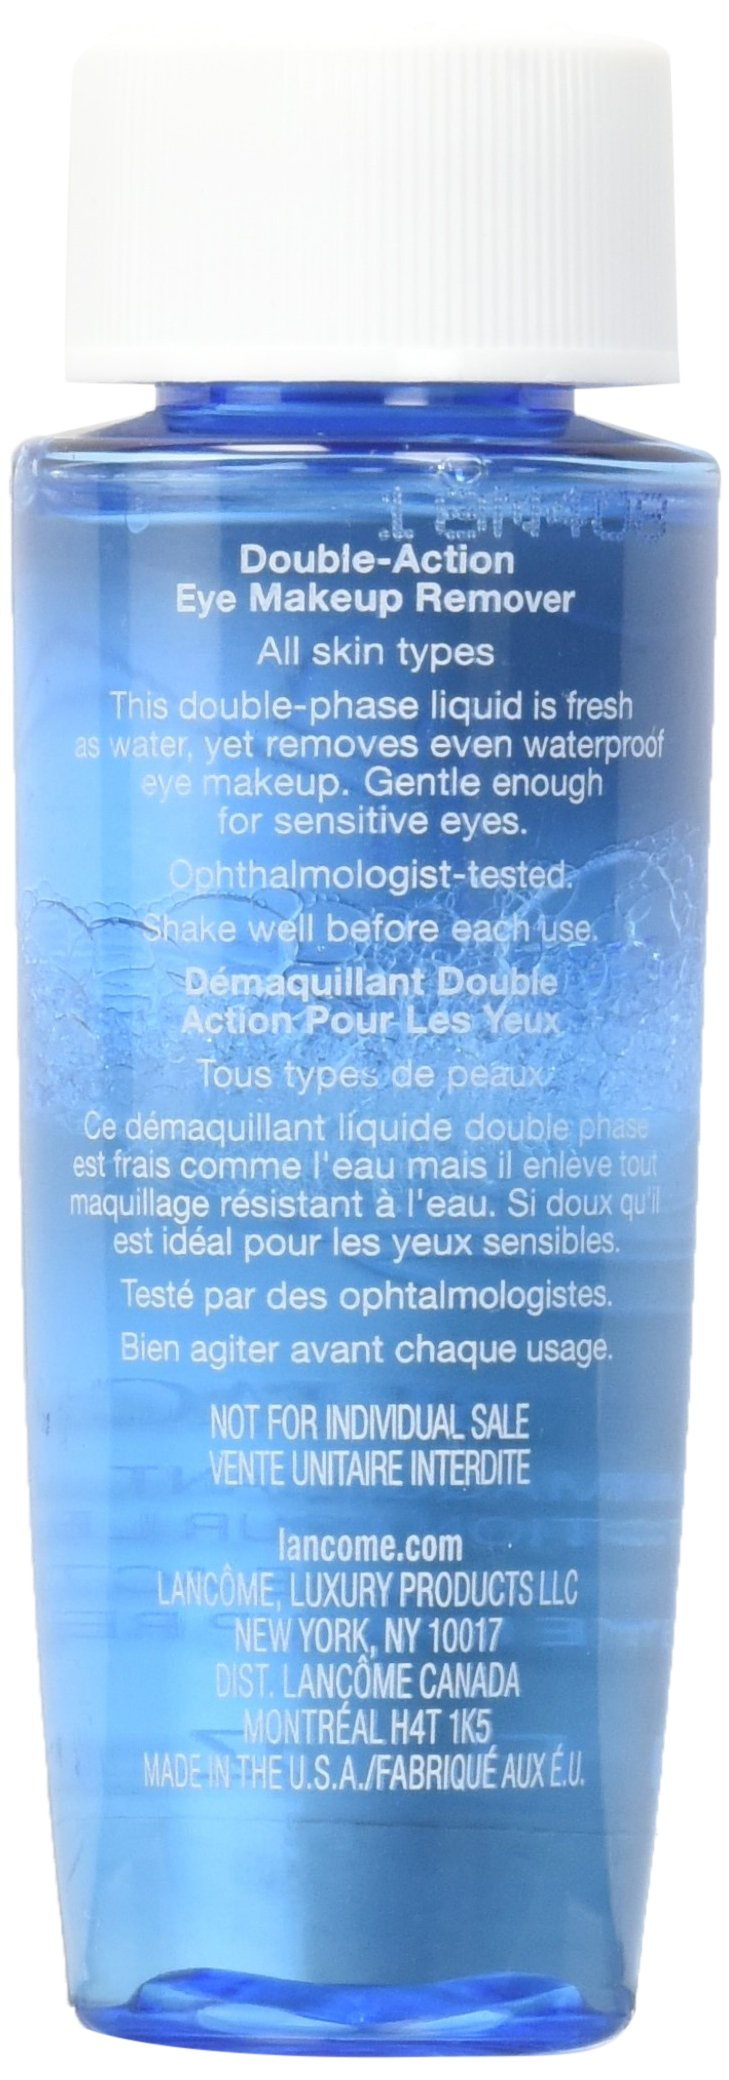 Bi-Facil Double Action Eye Makeup Remover 1.7 FL. OZ. Each (Lot of 4) by lancome (Image #2)